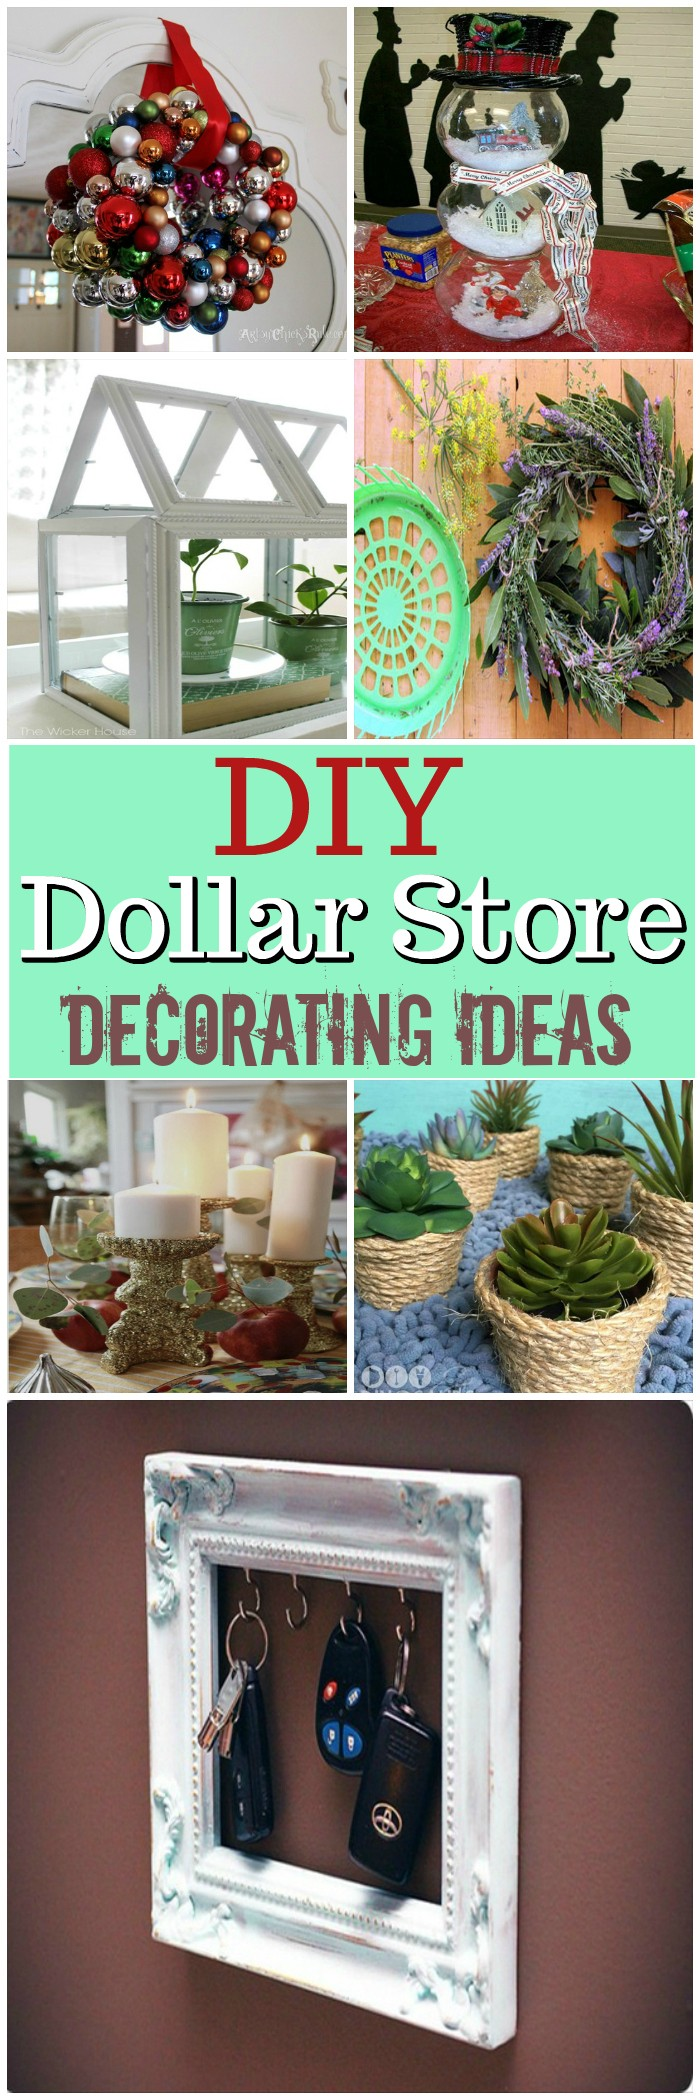 Diy dollar store decorating ideas diy home decor - Dollar store home decor ideas pict ...